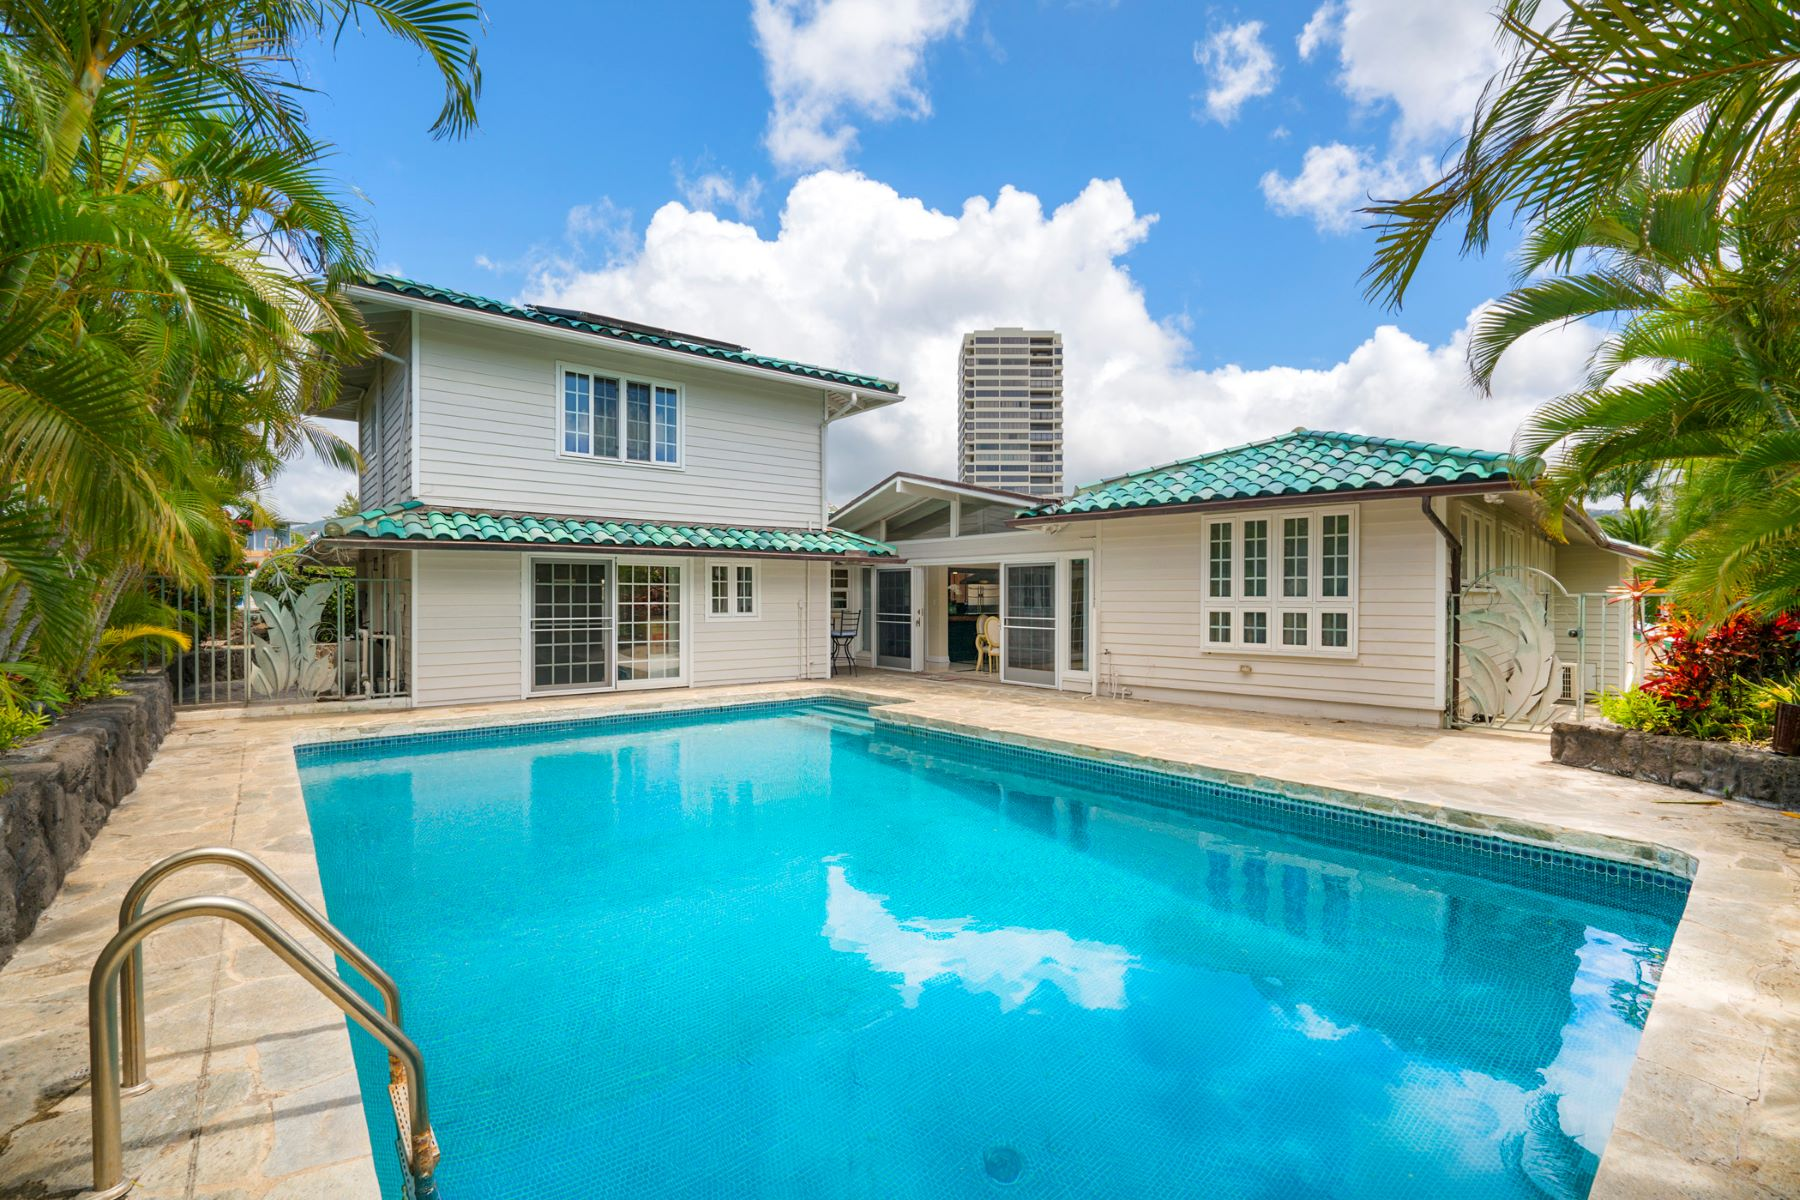 Single Family Home for Sale at Sunny Kahala Escape 1344 Pueo Street Honolulu, Hawaii 96816 United States